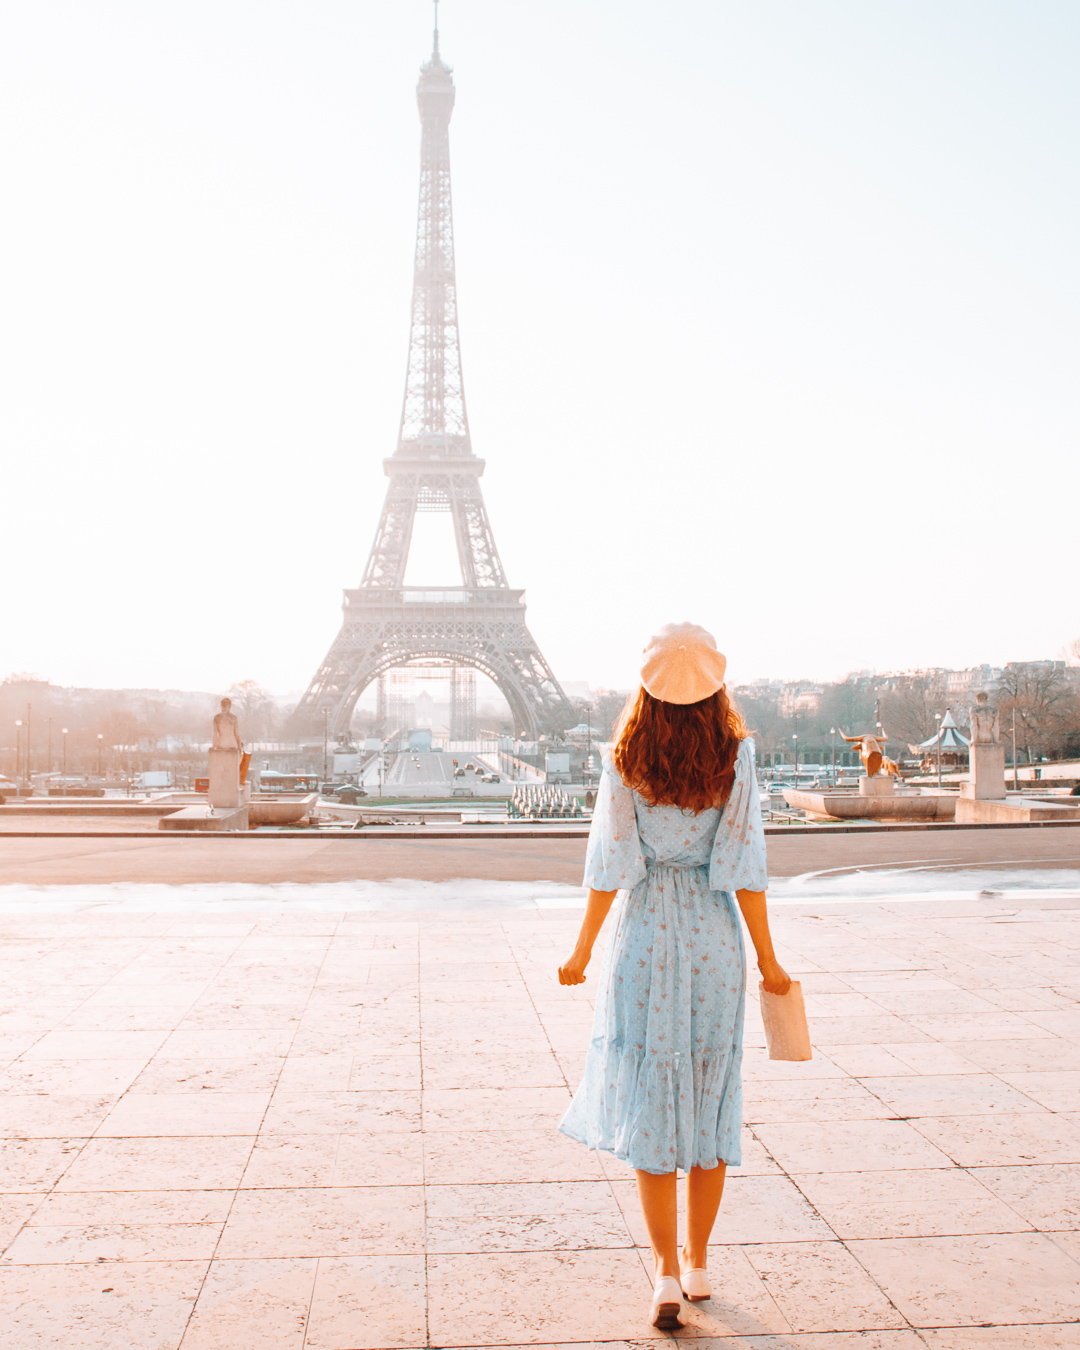 A girl with a blue dress in front of the Eiffel Tower in Paris